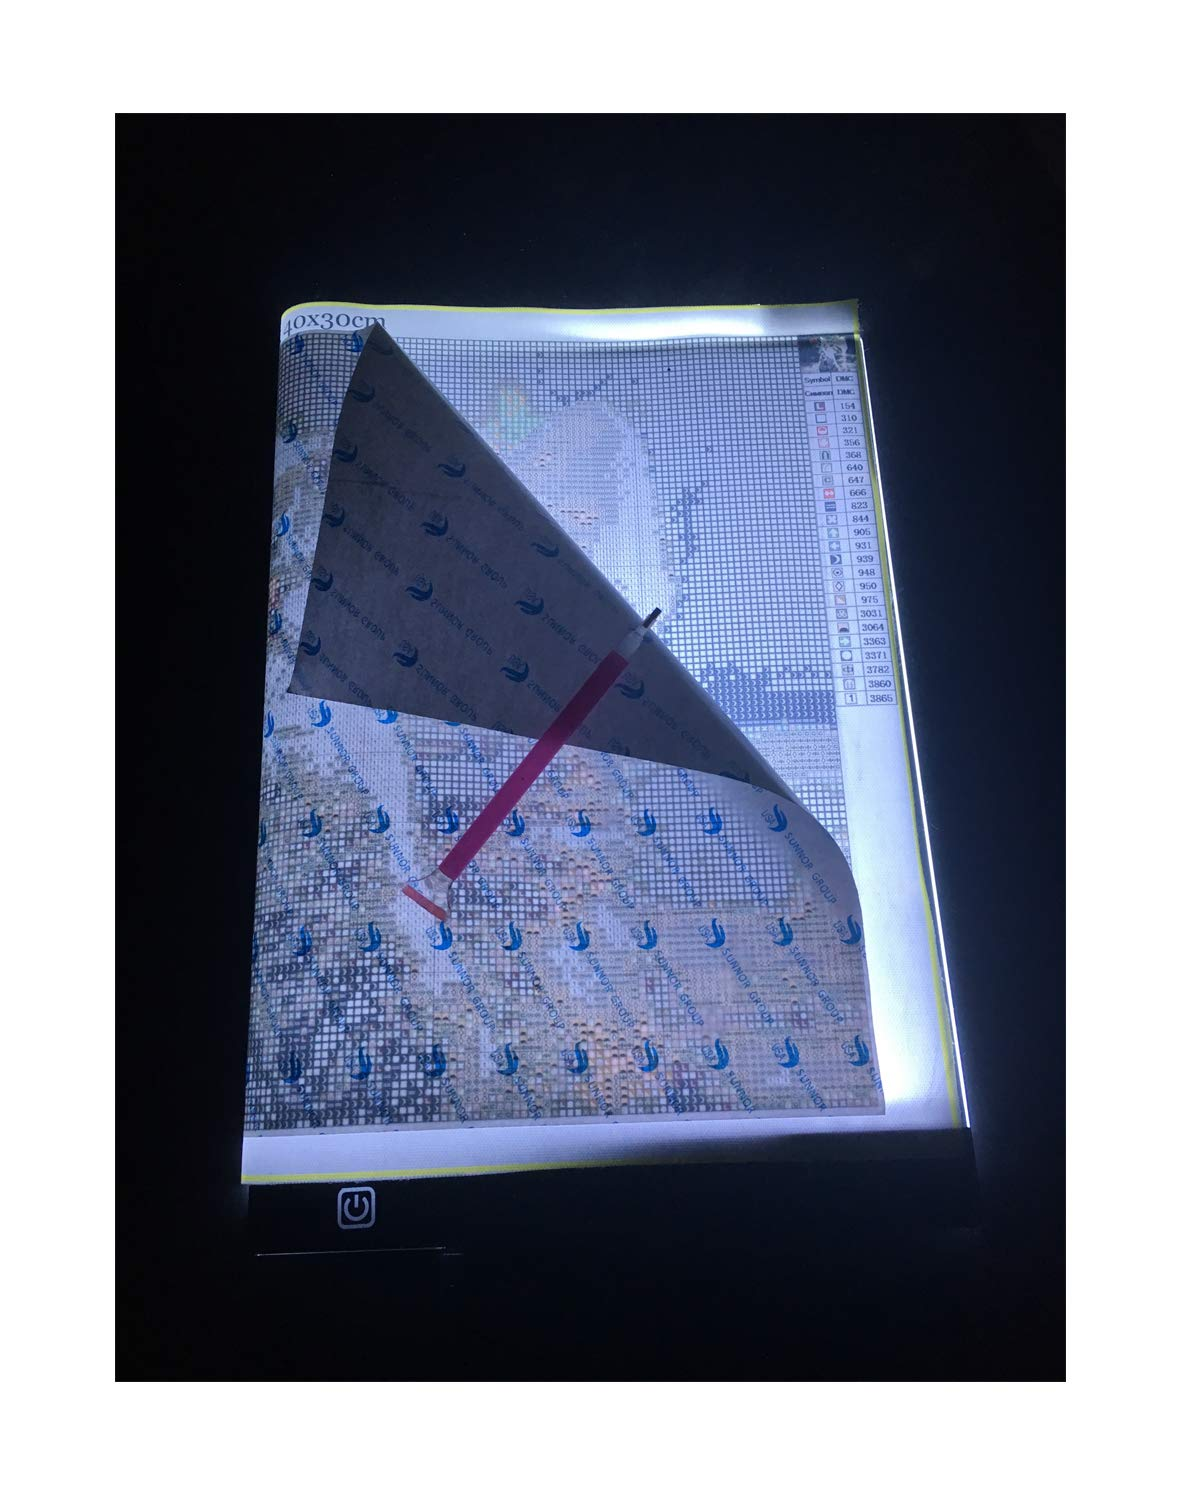 A4 LED Light Tablet Board Pad for DIY 5D Diamond Painting for Adults by Number Kit,Artcraft Tracing Light Table for Artists,Drawing, Sketching, Animation by Everydlife